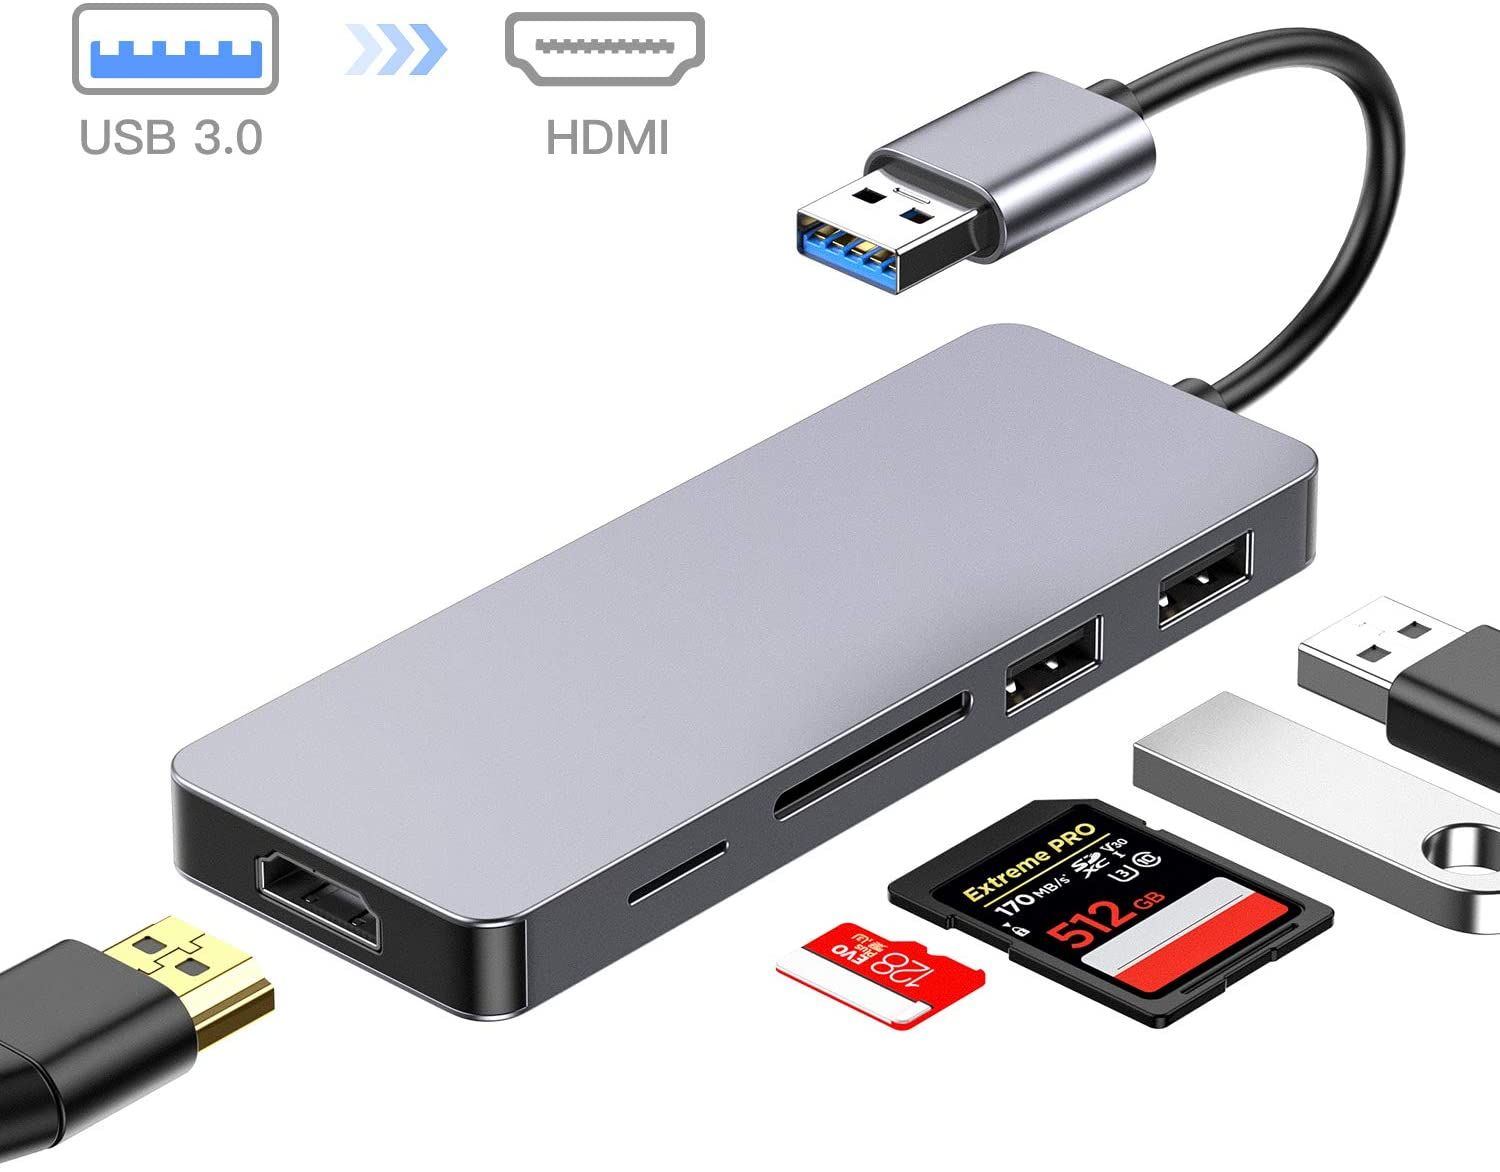 USB to HDMI Adapter,5-in-1 USB 3.0 to HDMI Converter